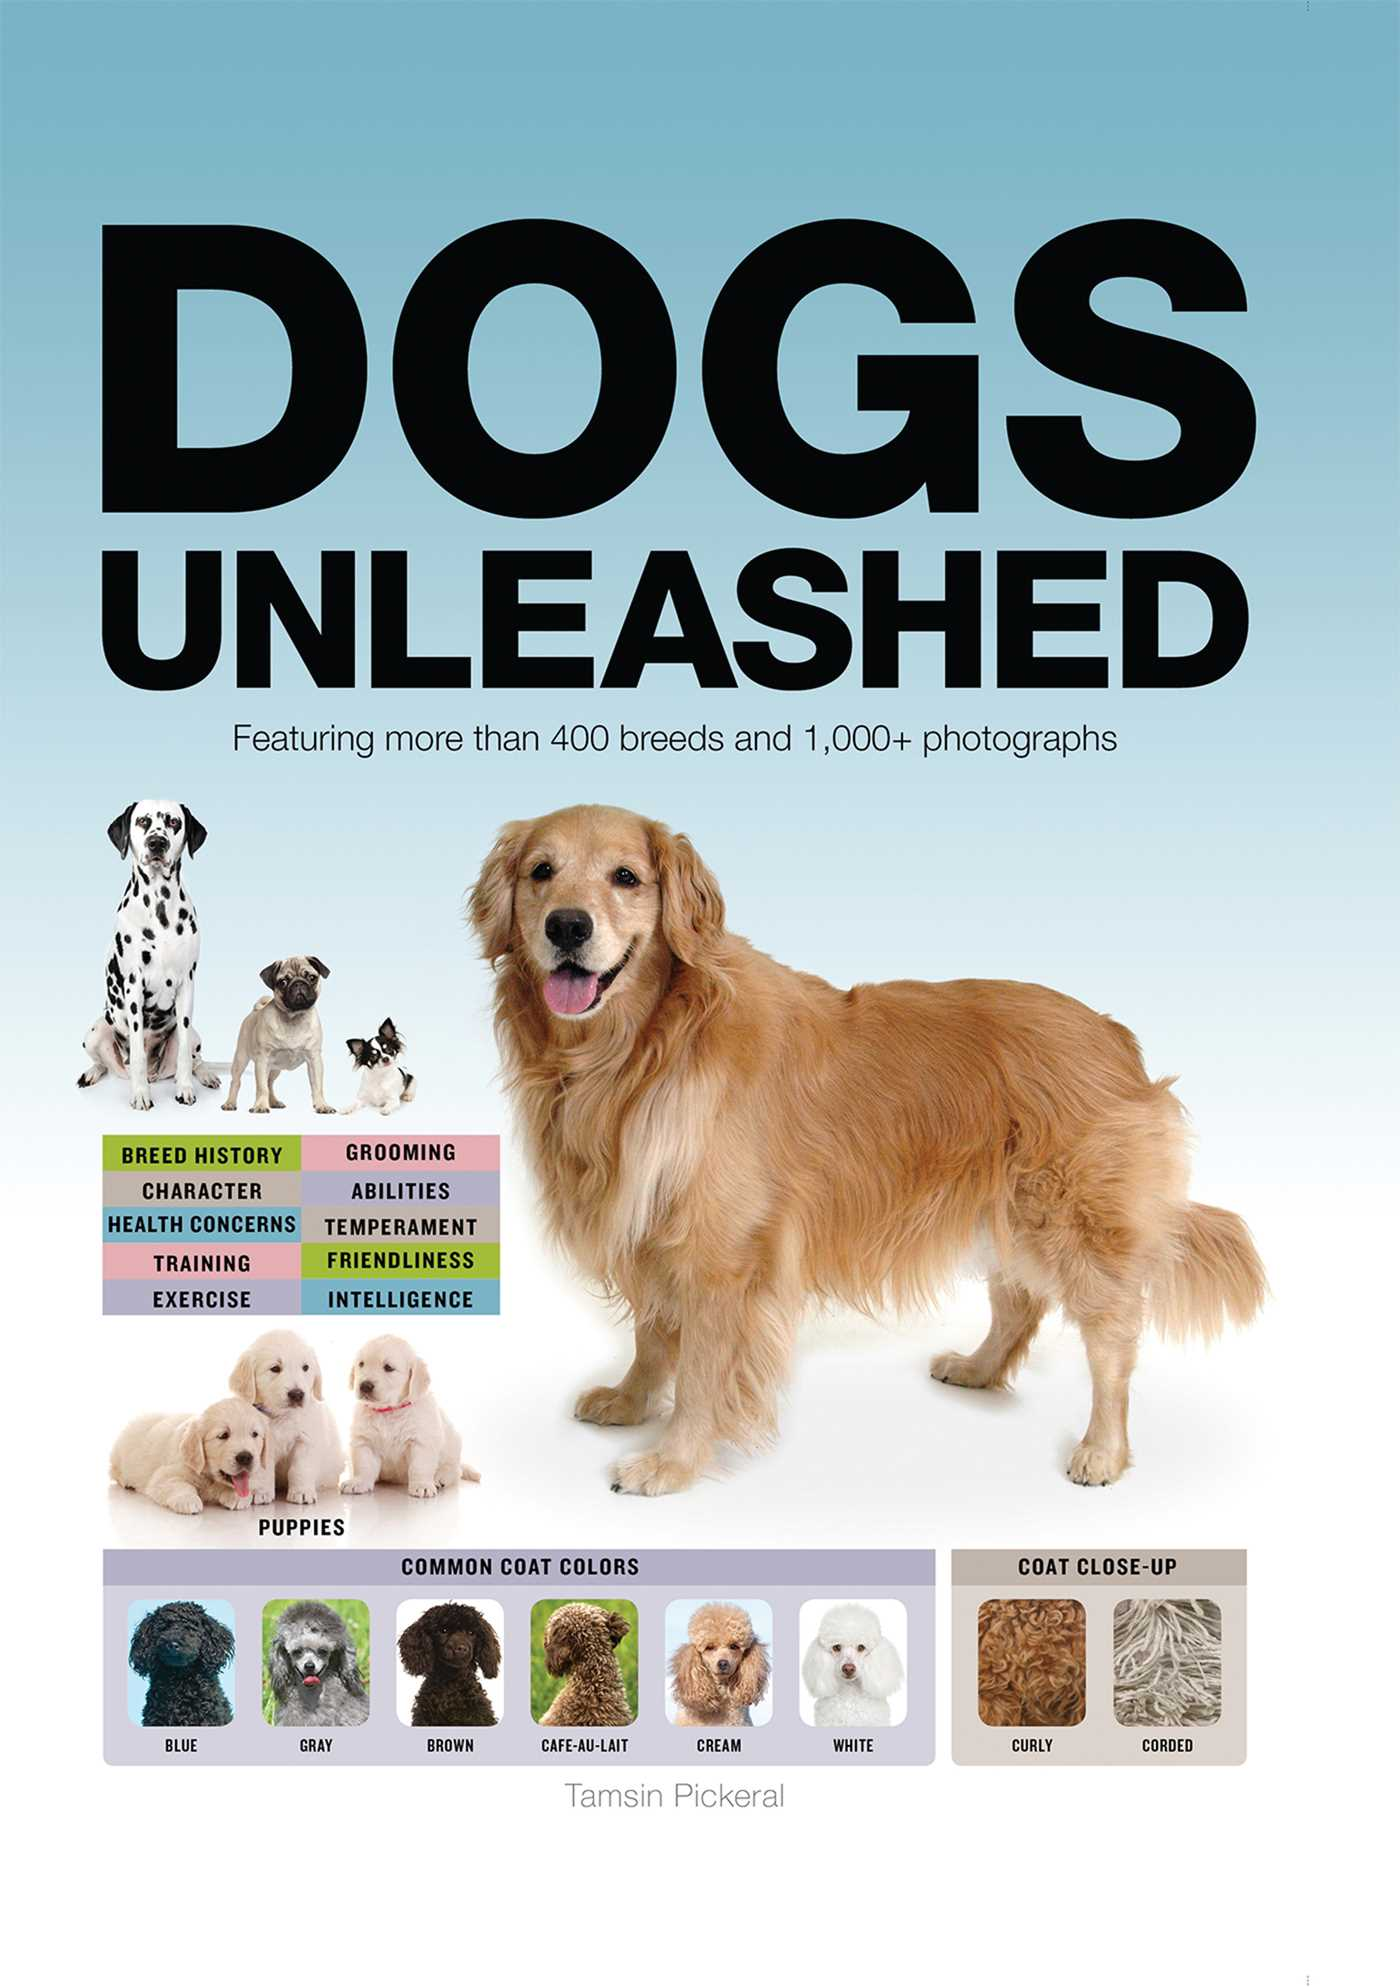 Dogs unleashed 9781626862739 hr